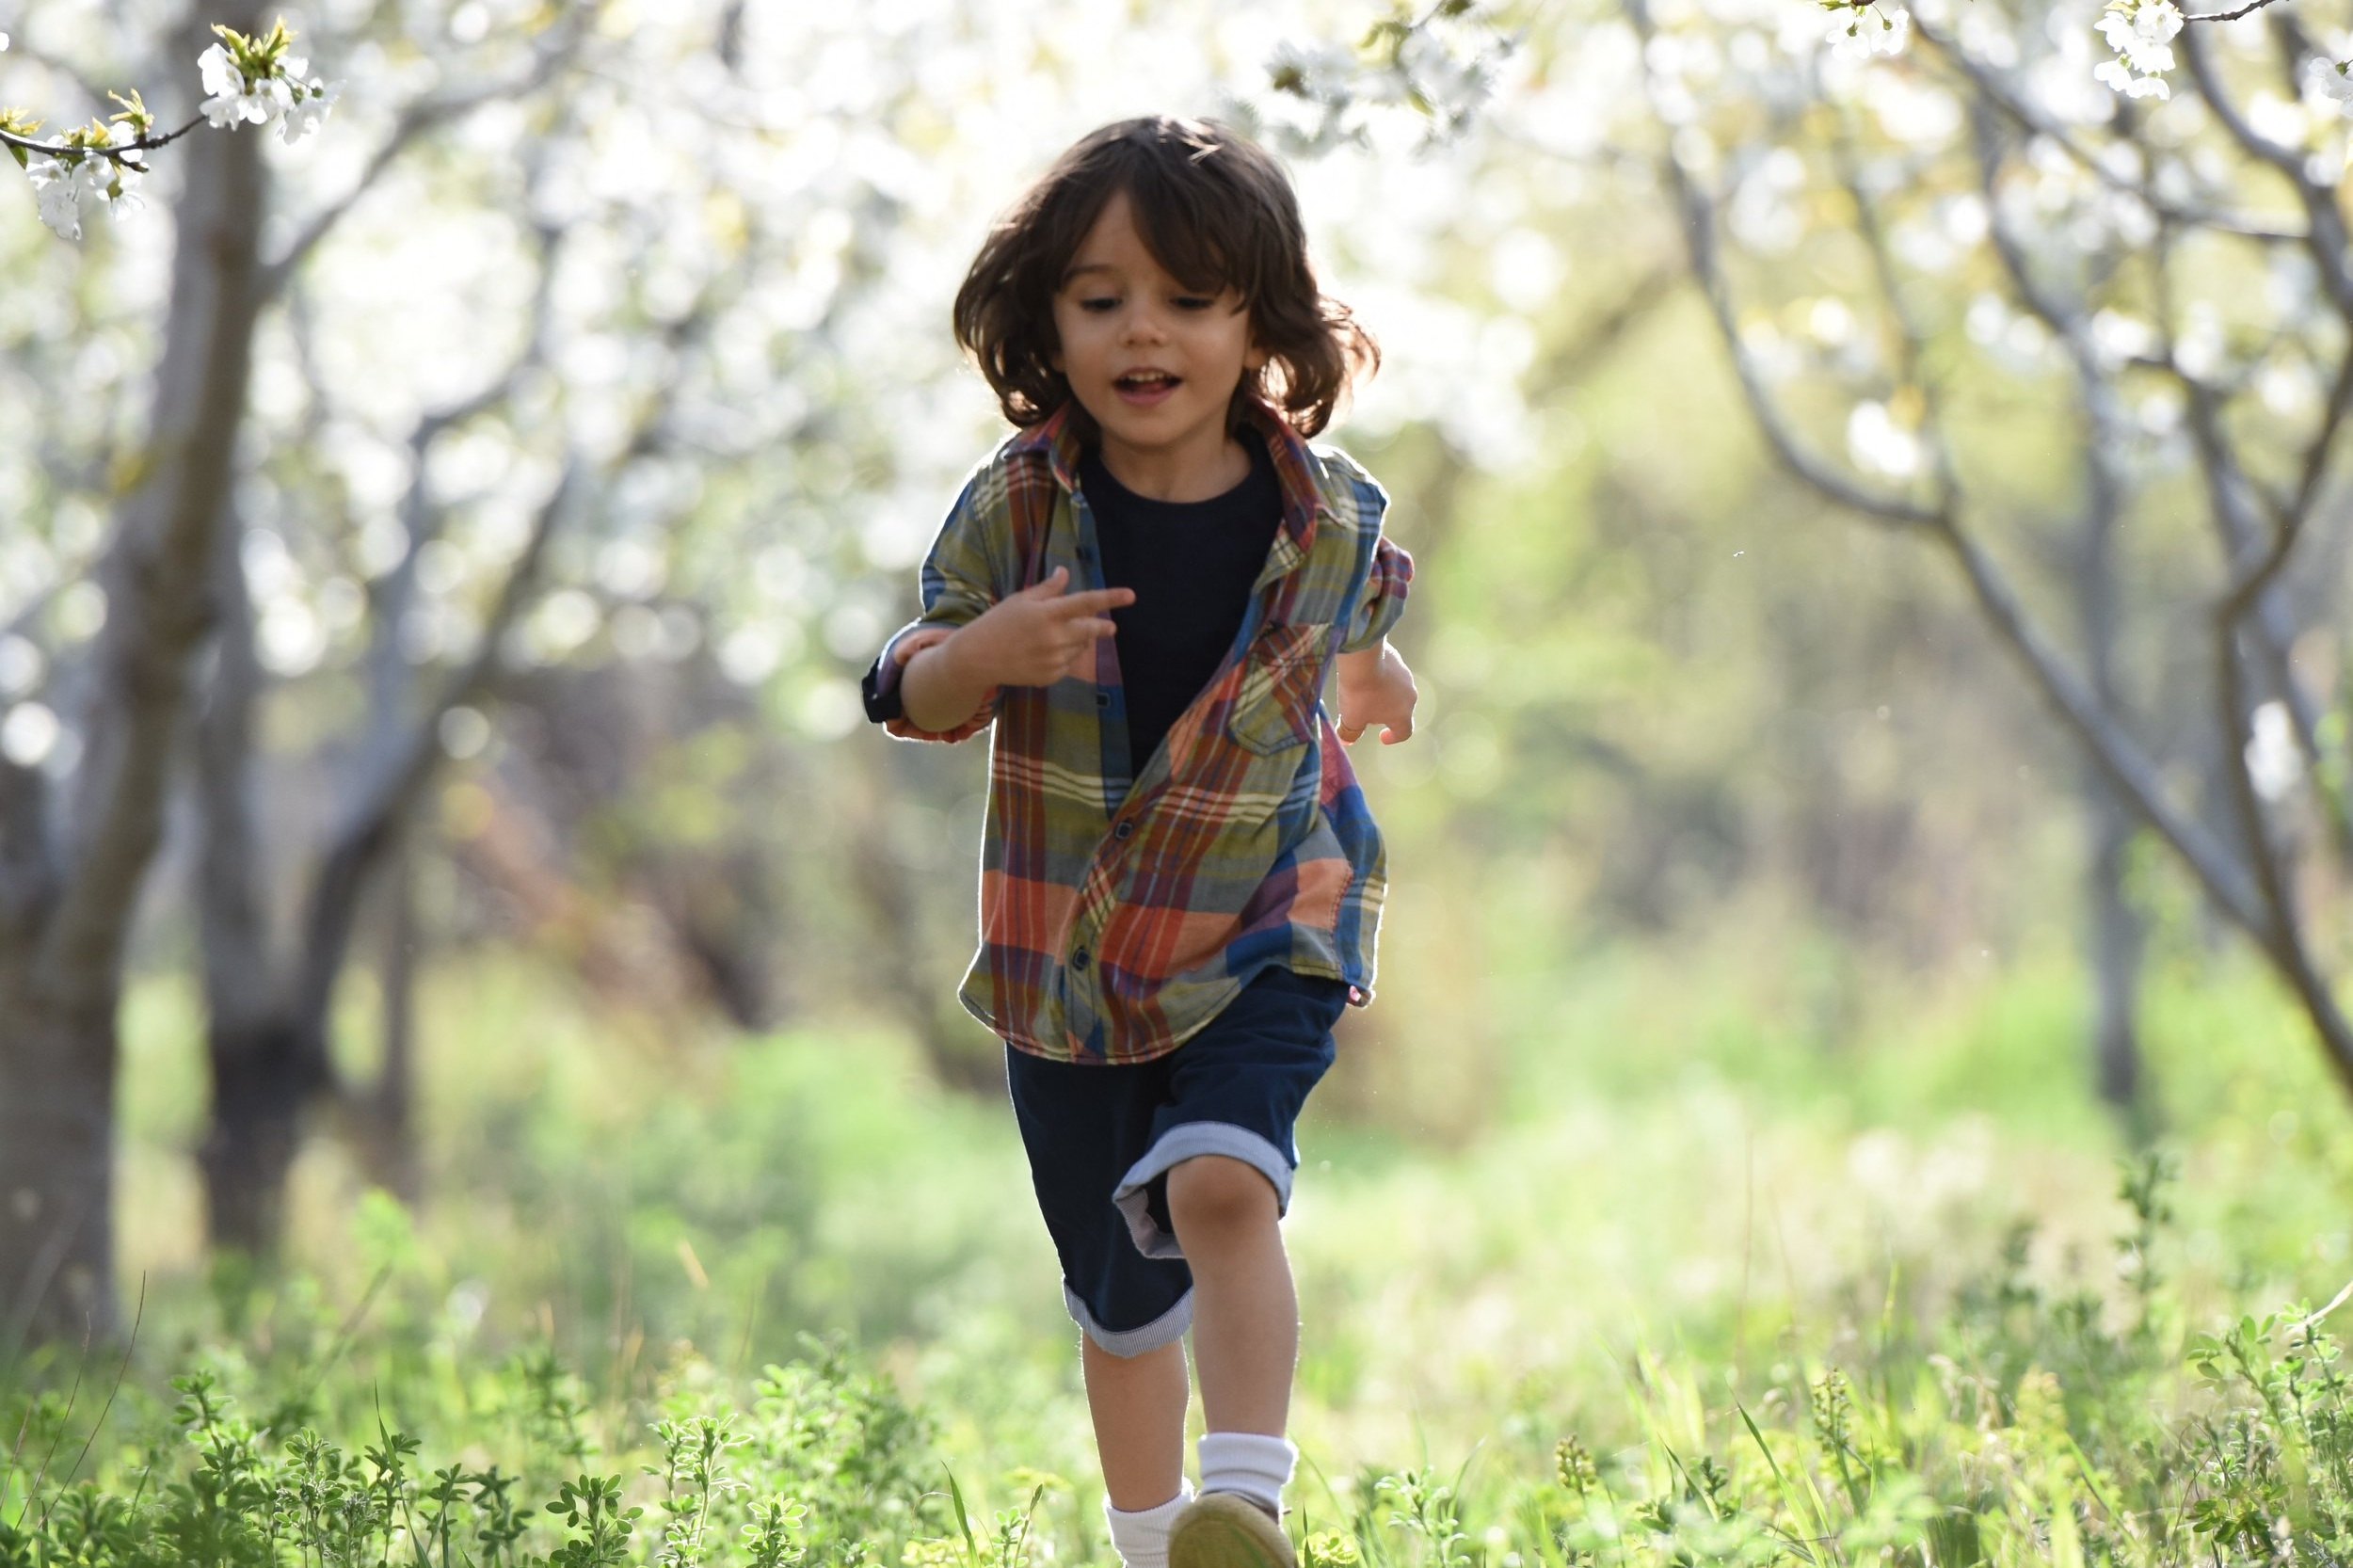 blurred-background-boy-child-1416736.jpg